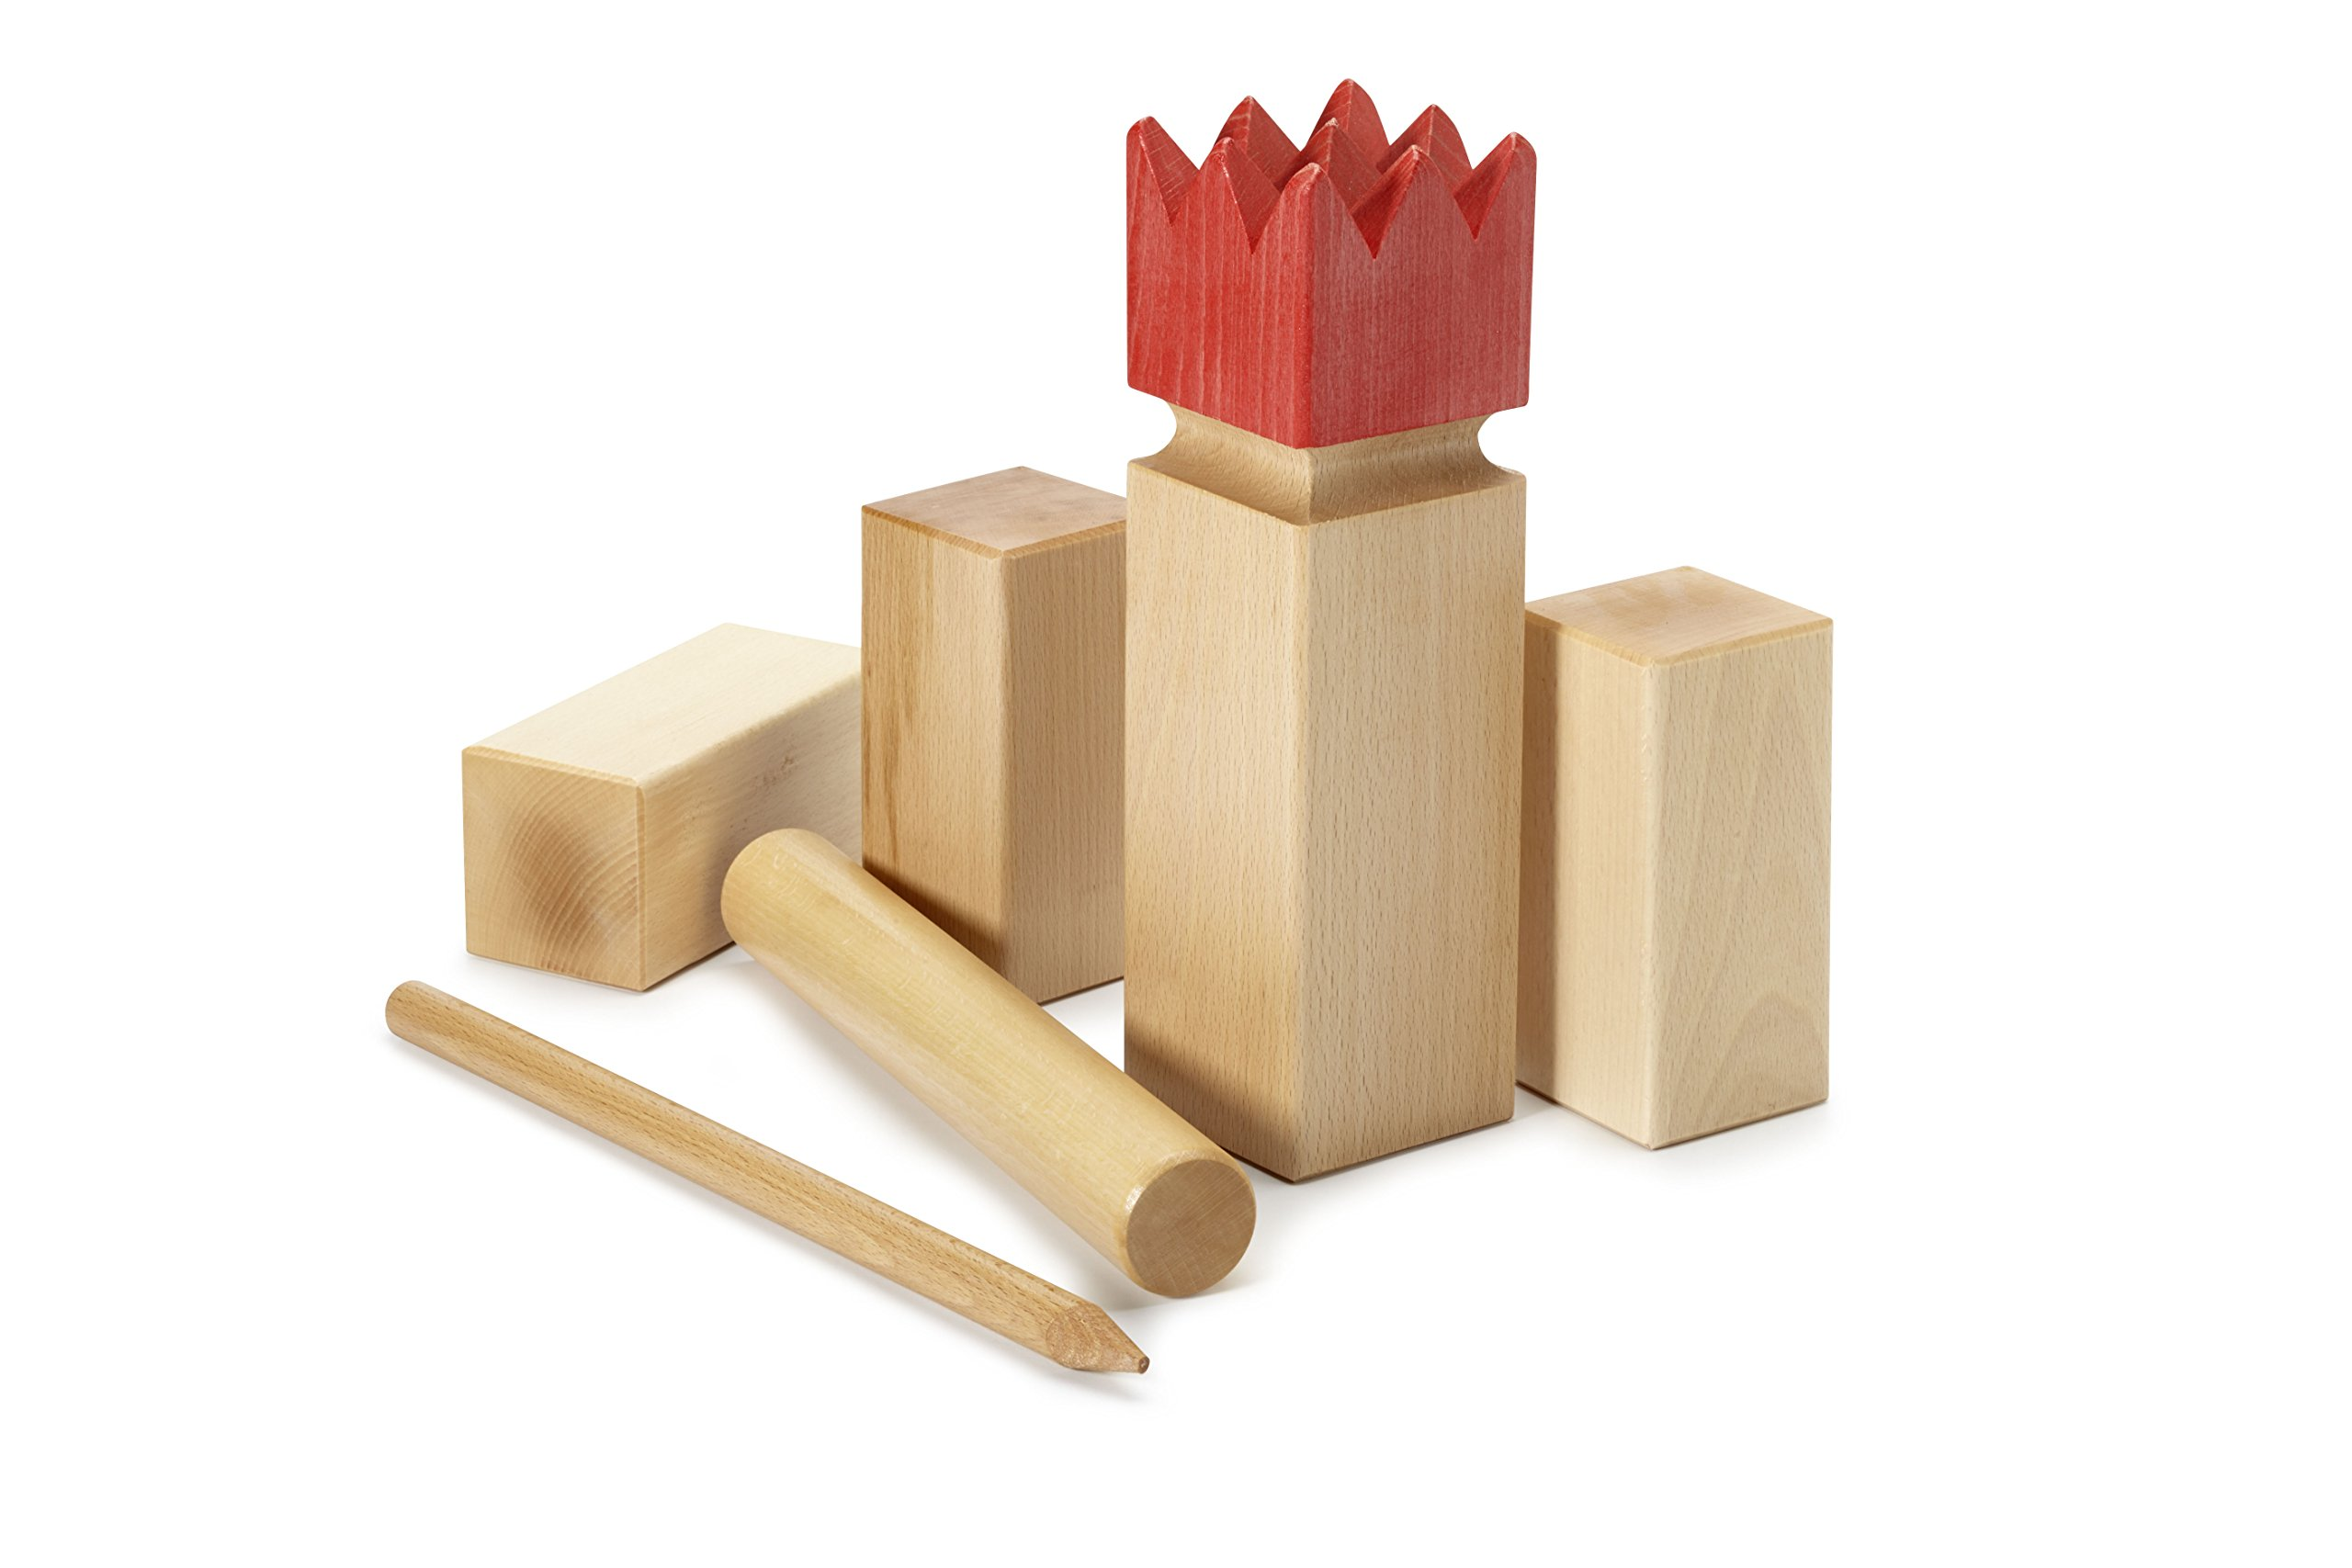 Kubbspel Classic Kubb Official U.S. Tournament Size Natural (Made in Italy) 19.8 lbs.